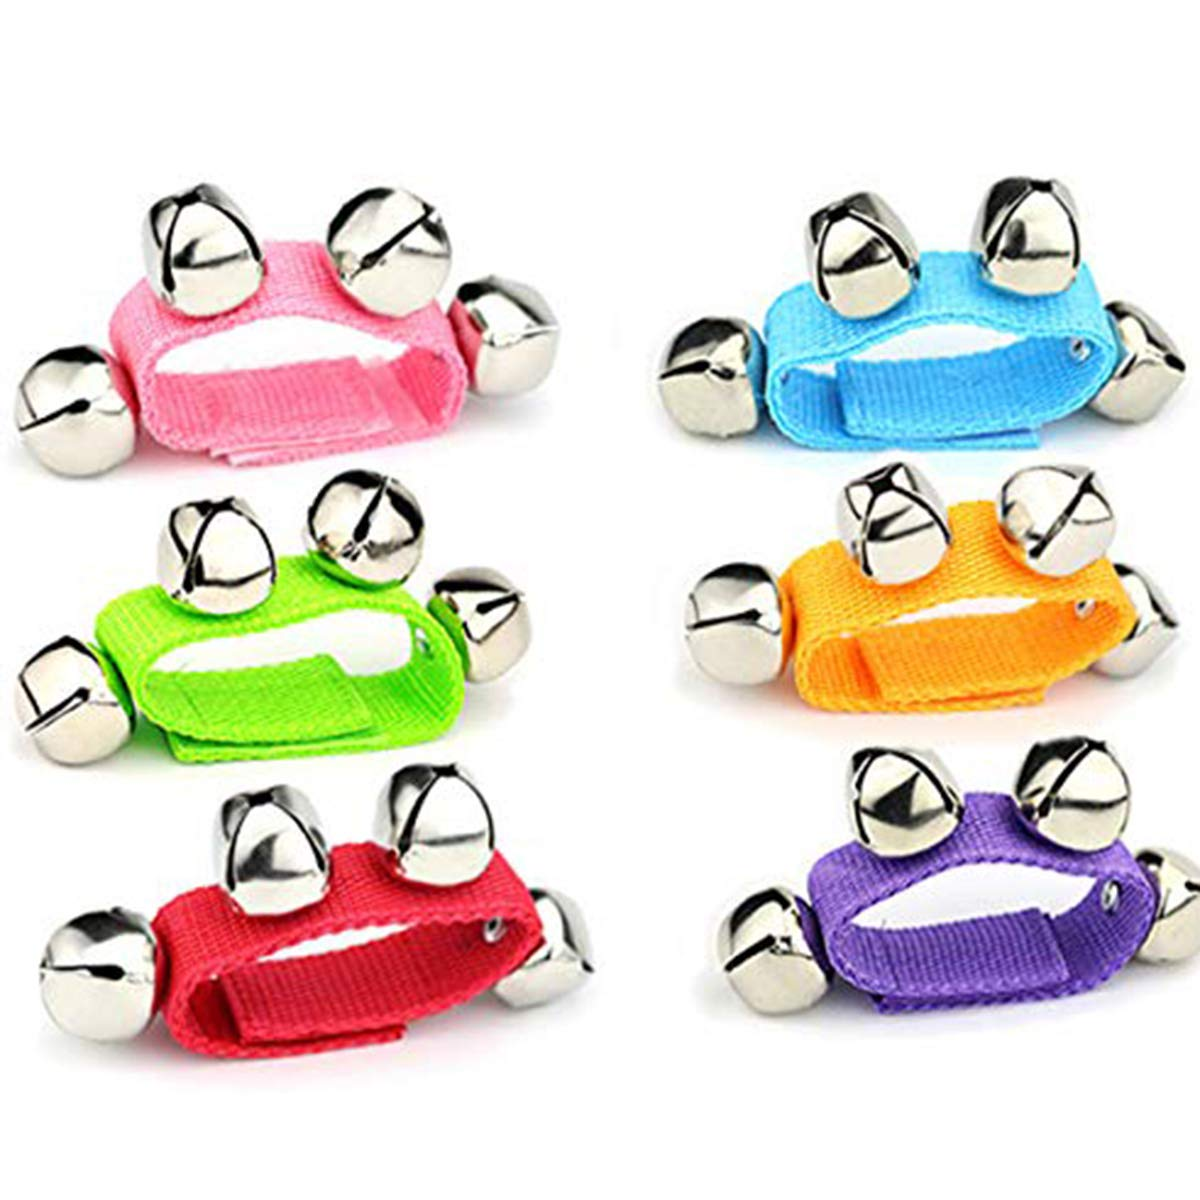 6 Pcs Wrist Band Jingle Bells Musical Rhythm Toys, Children's Instruments for School, 6 Colors